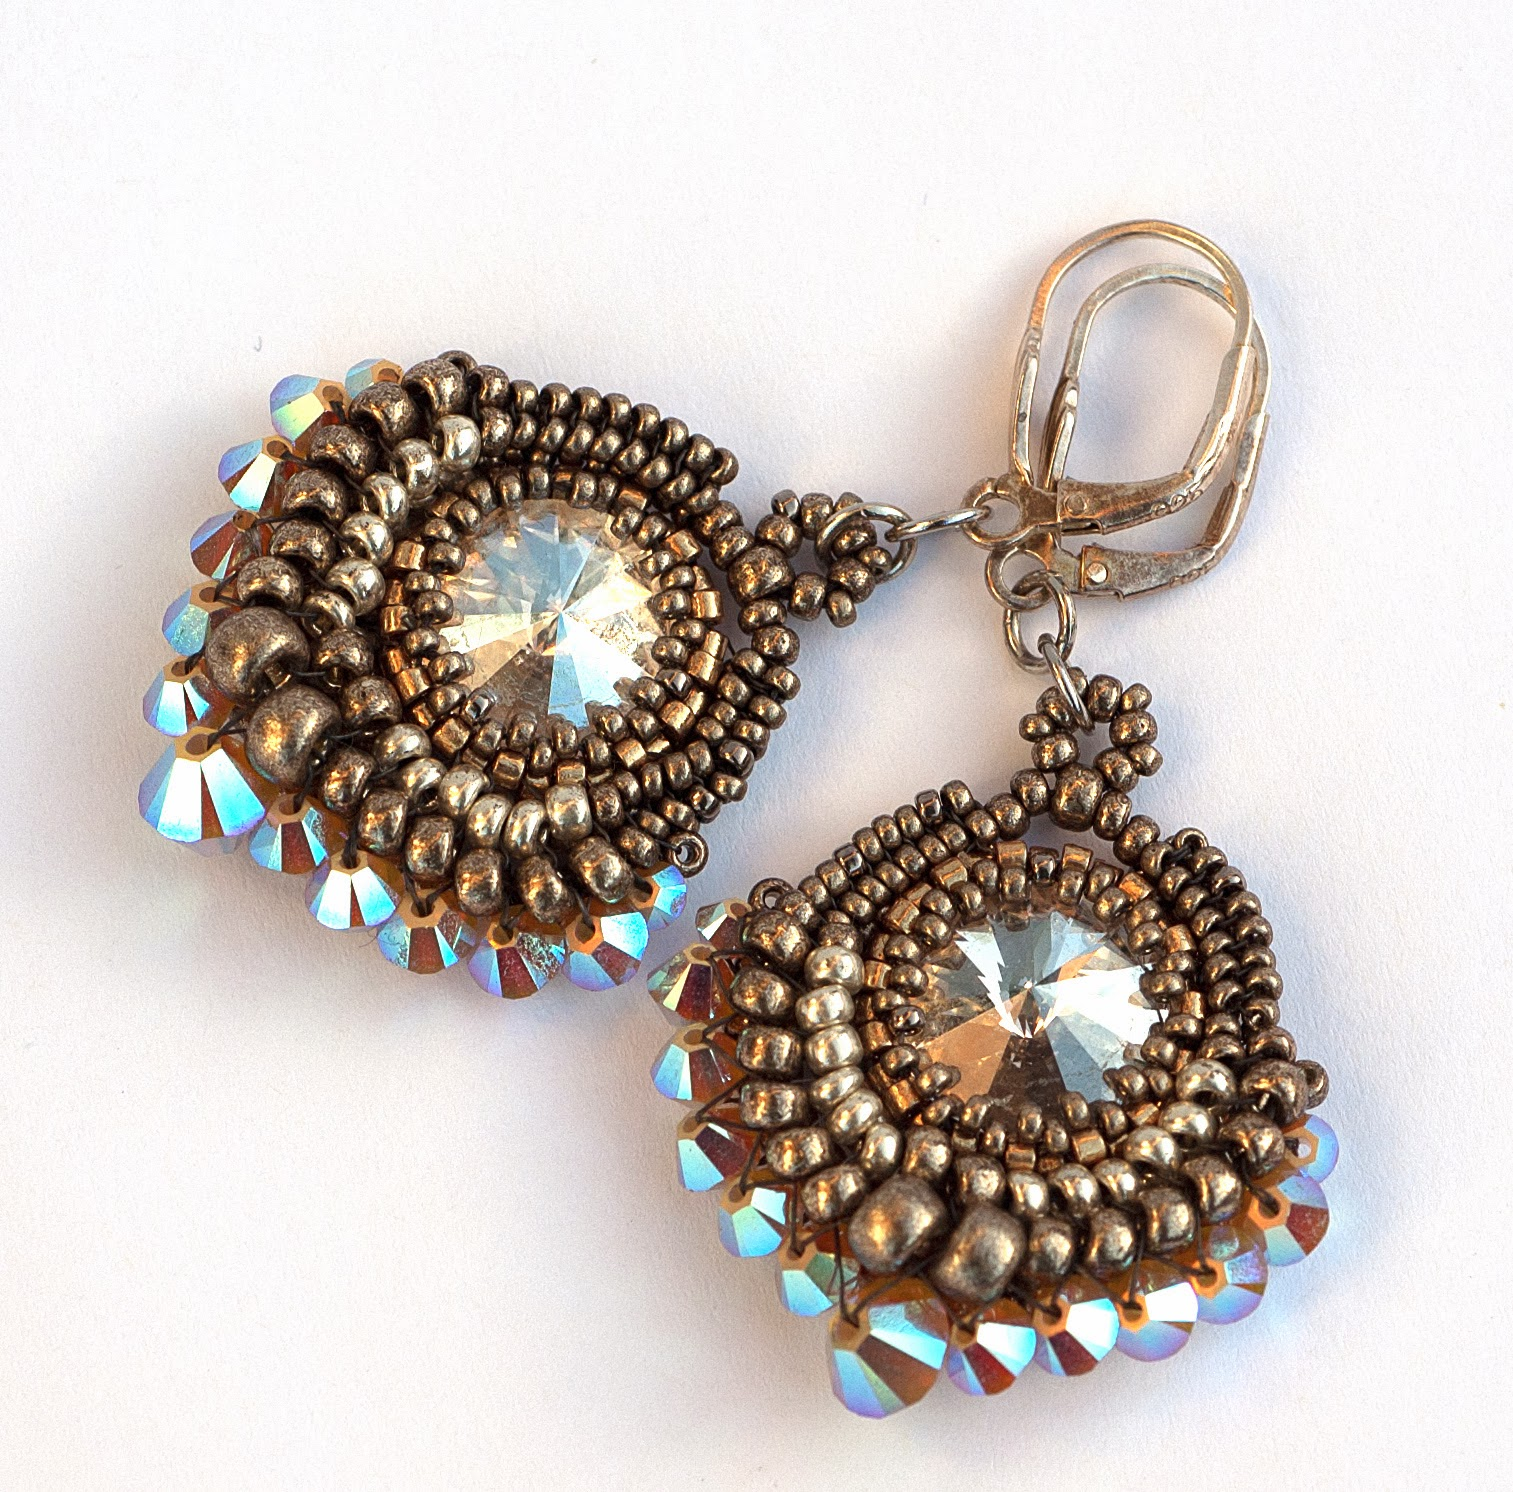 Rivoli Ohrringe - Rivoli Earrings